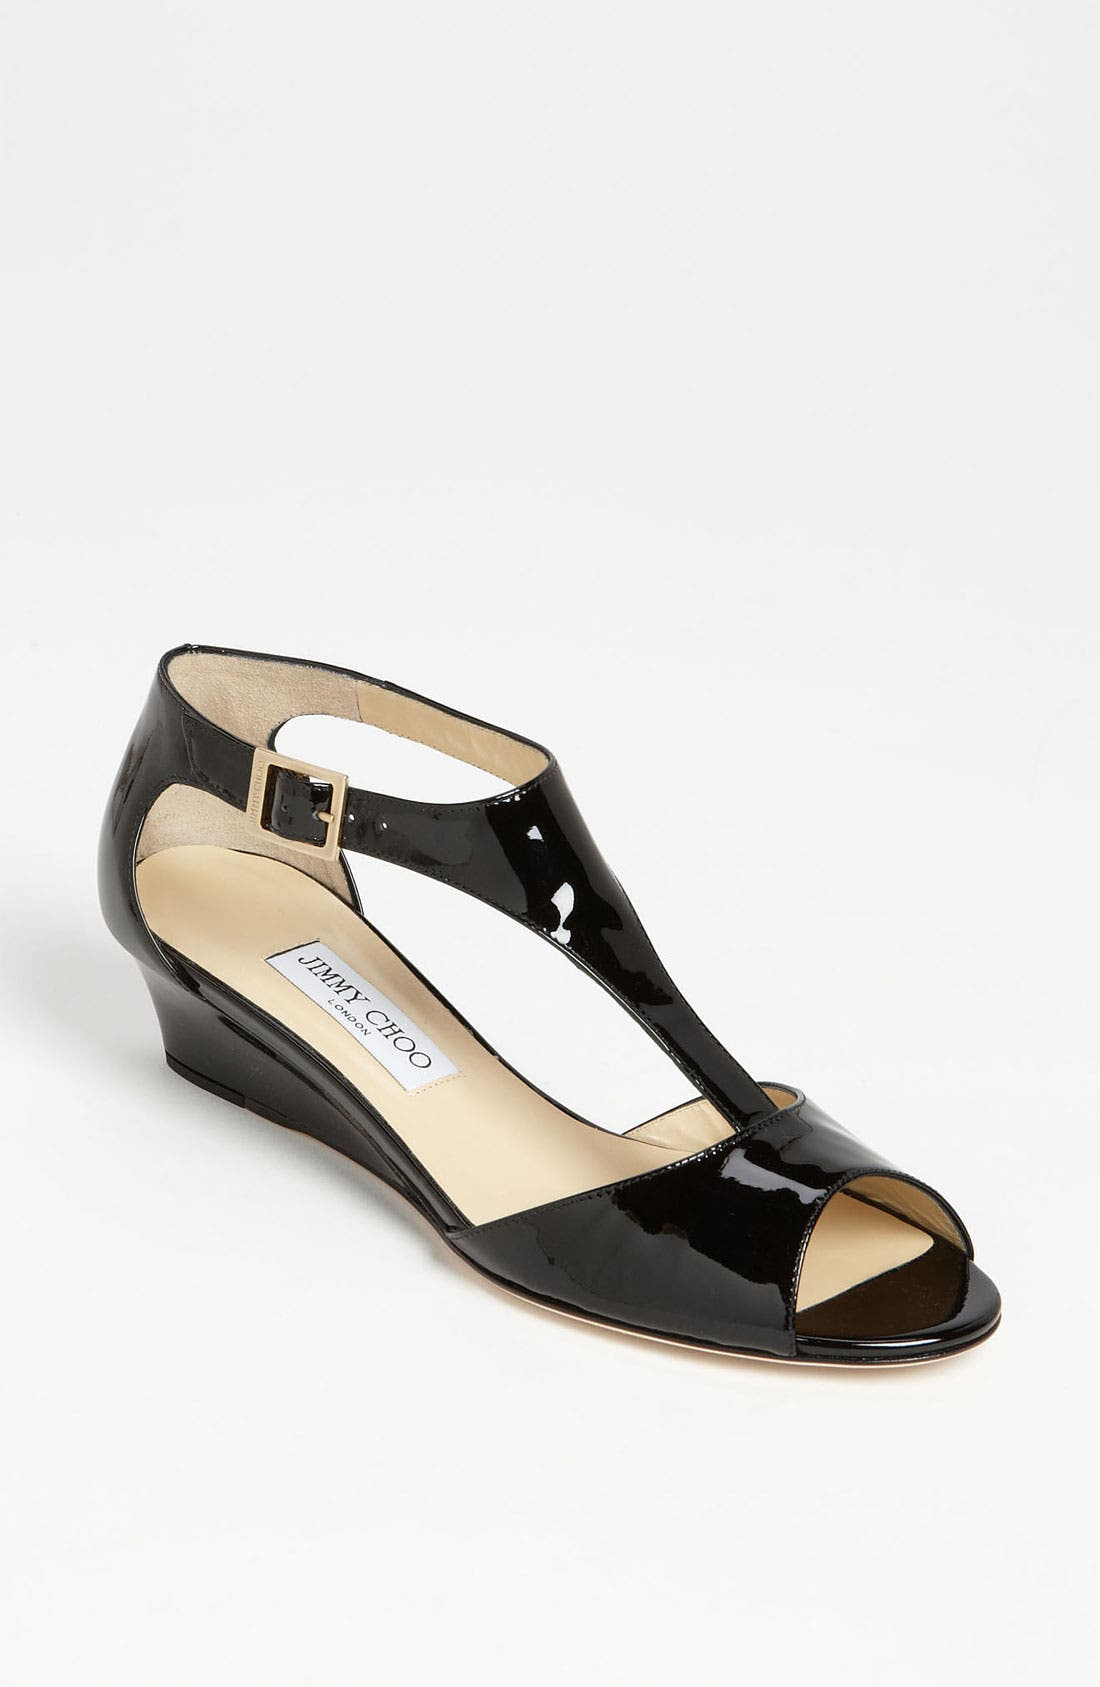 Main Image - Jimmy Choo 'Treat' T-Strap Sandal